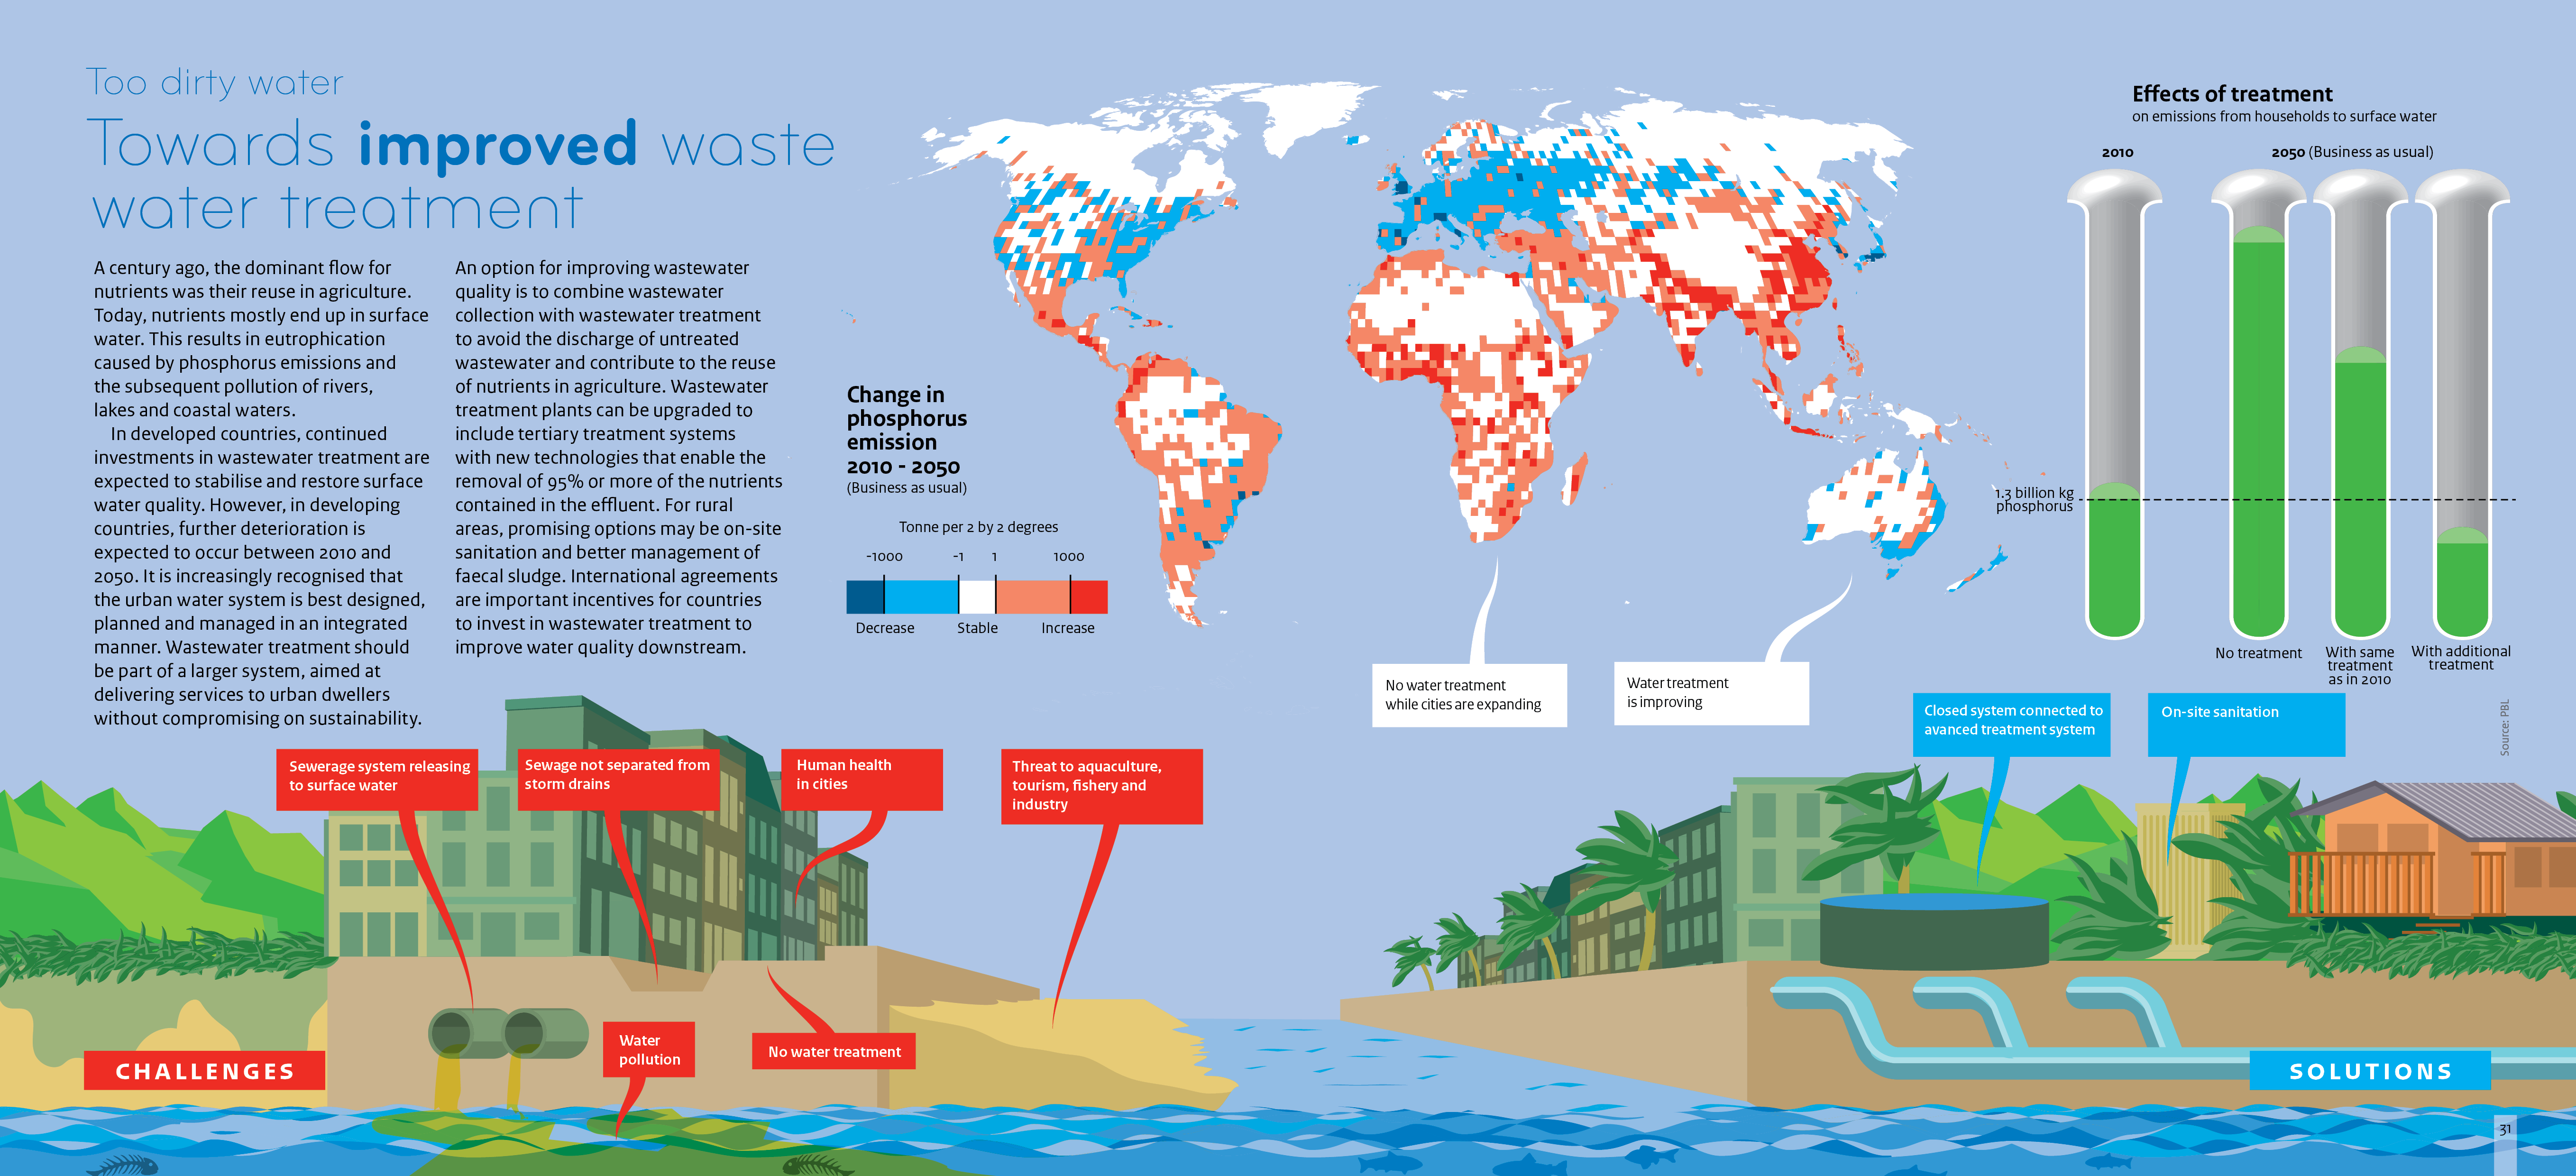 Phosphorus emissions are highest in the southern hemisphere, excluding Australia. Additional treatment on household emissions to surface water is required to reach below 2010 levels in 2050. Illustration shows various challenges, including sewerage systems, and various solutions, such as on site sanitation.